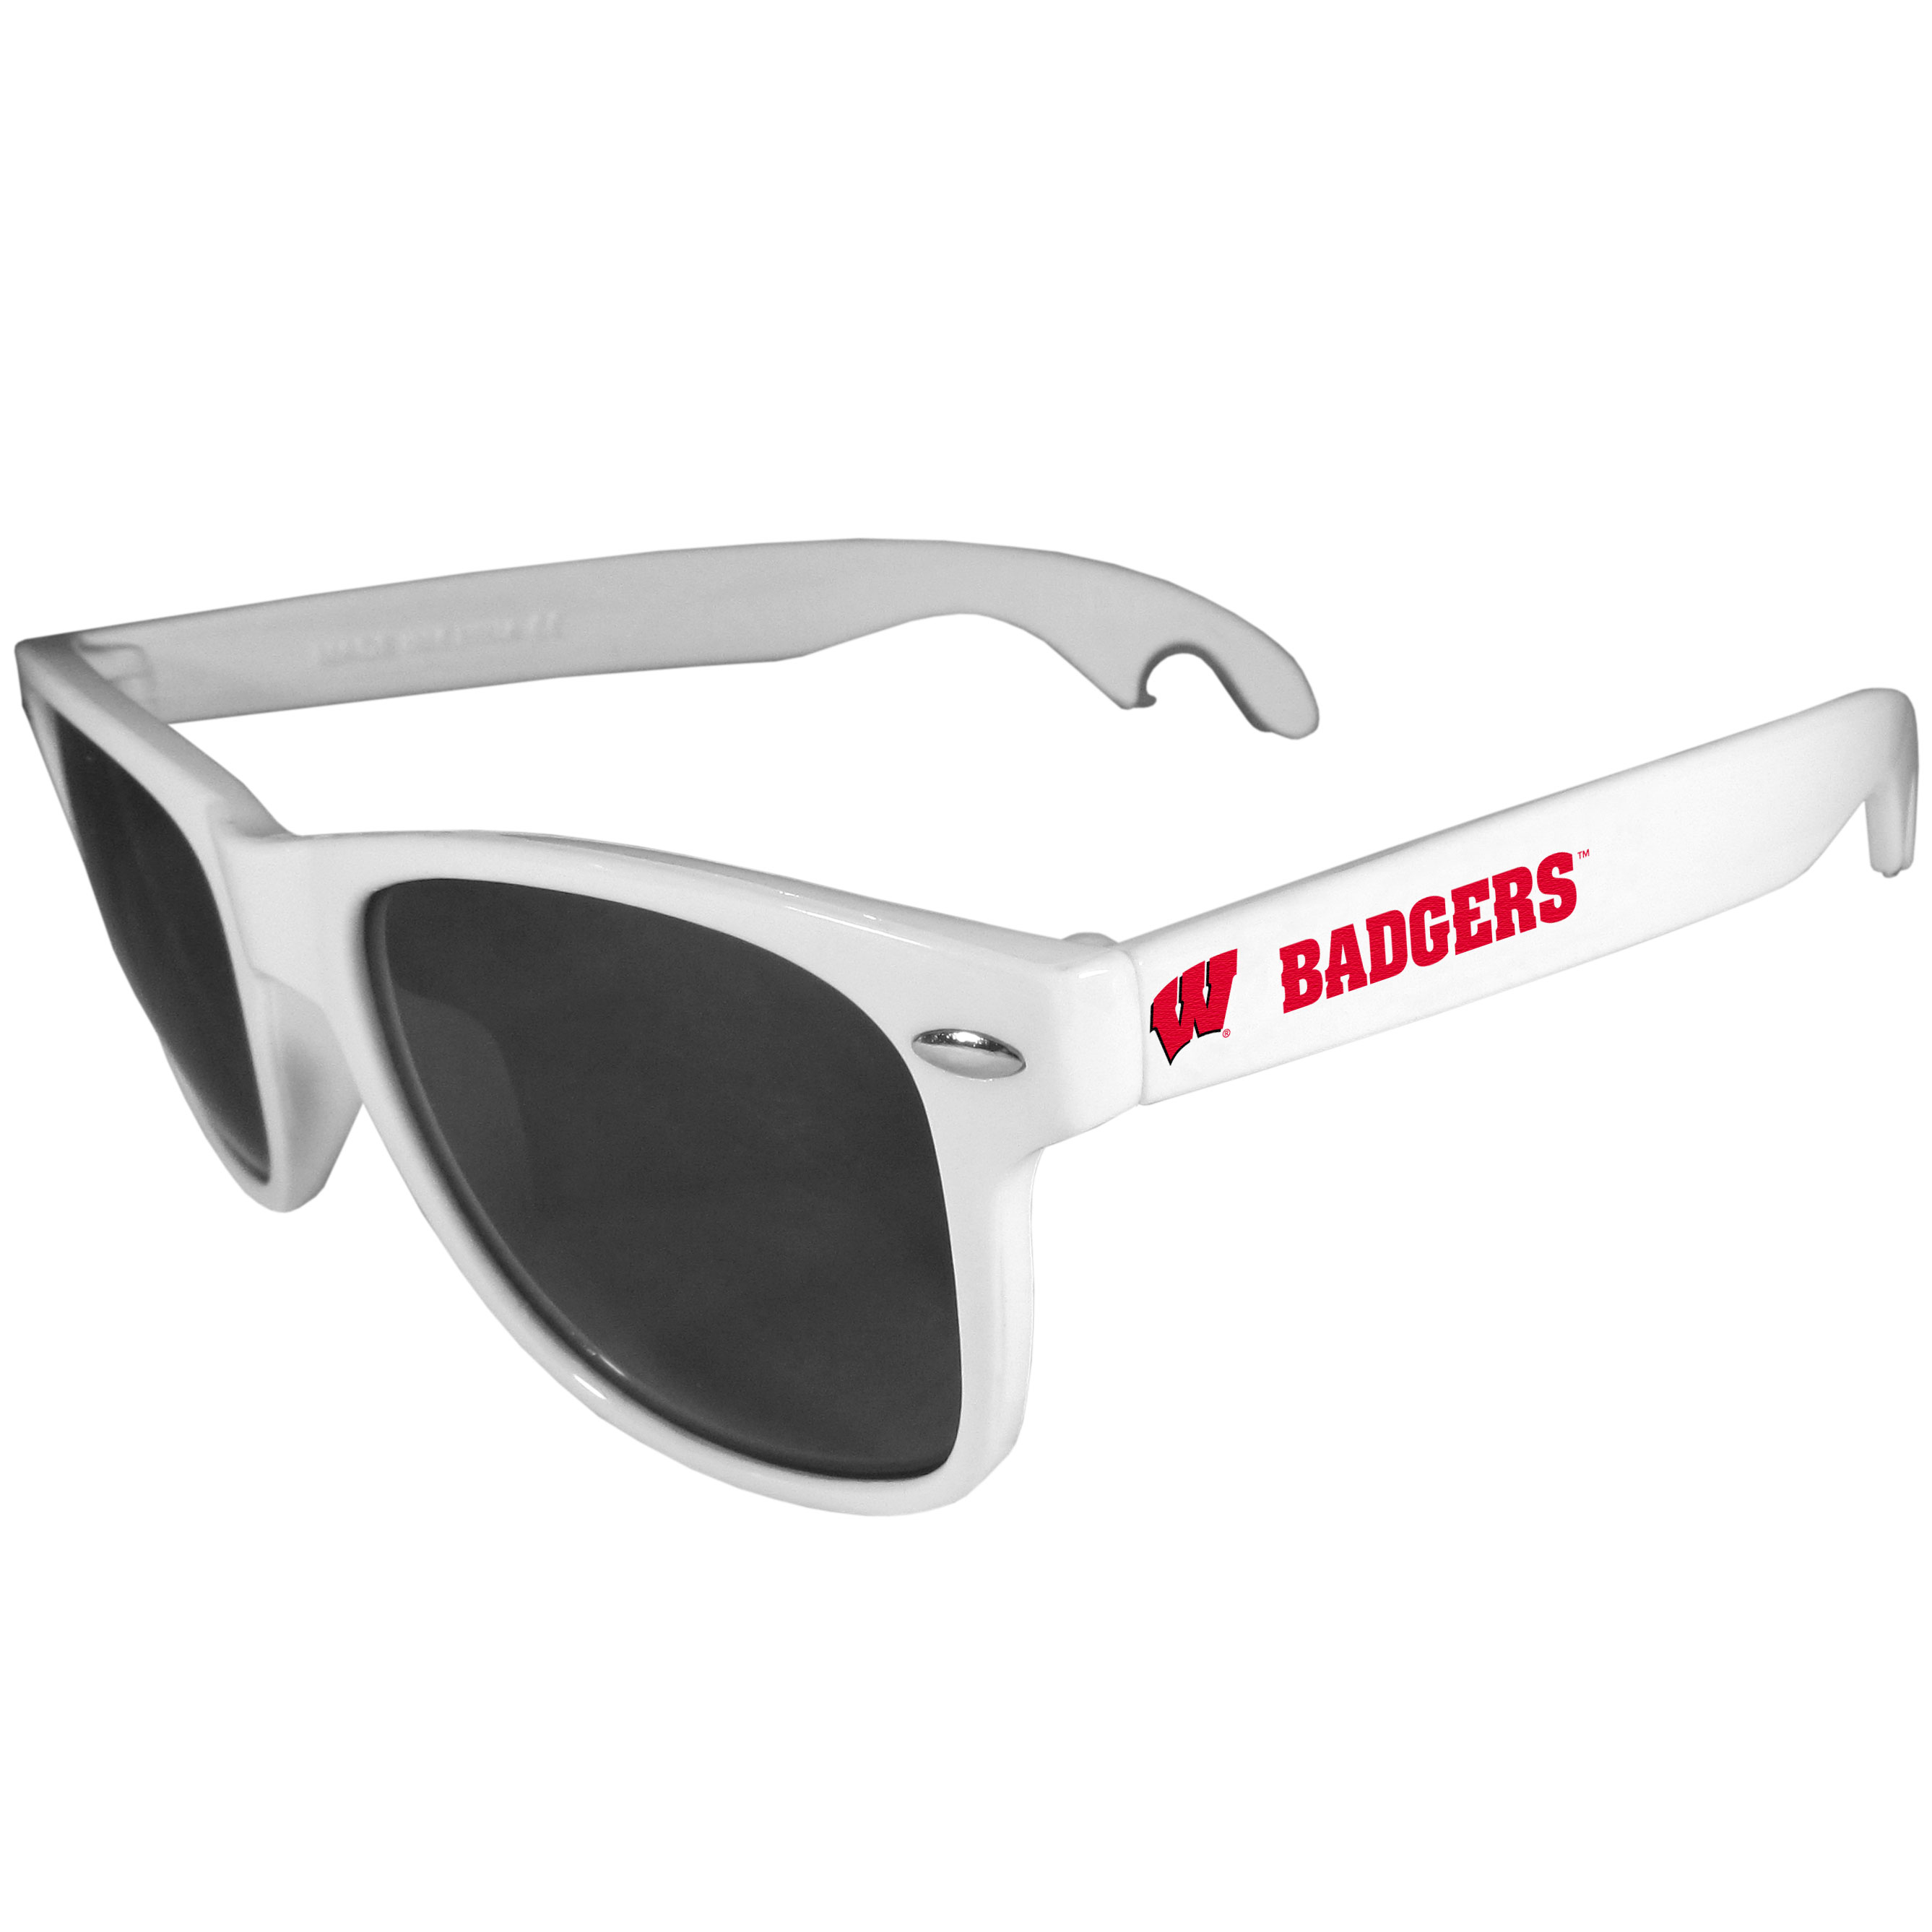 Wisconsin Badgers Beachfarer Bottle Opener Sunglasses, White - Seriously, these sunglasses open bottles! Keep the party going with these amazing Wisconsin Badgers bottle opener sunglasses. The stylish retro frames feature team designs on the arms and functional bottle openers on the end of the arms. Whether you are at the beach or having a backyard BBQ on game day, these shades will keep your eyes protected with 100% UVA/UVB protection and keep you hydrated with the handy bottle opener arms.